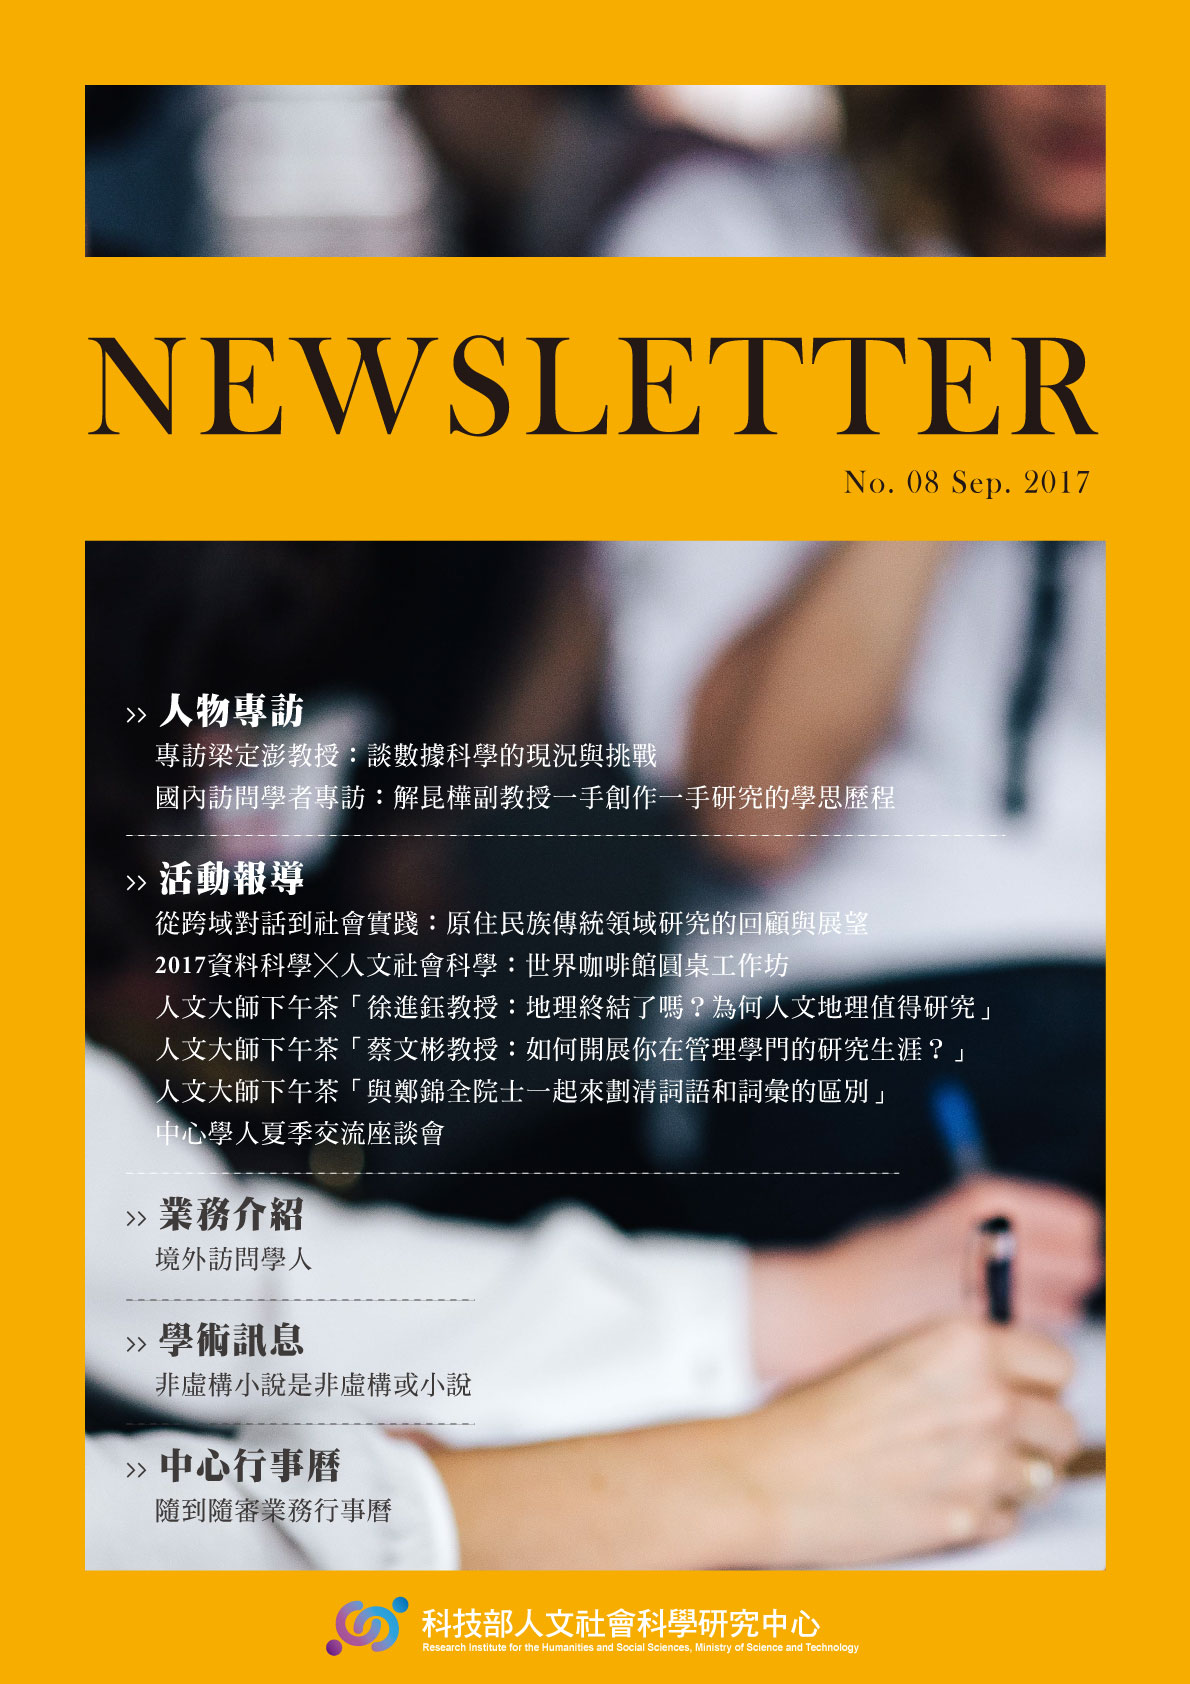 RIHSS Newsletter No. 08